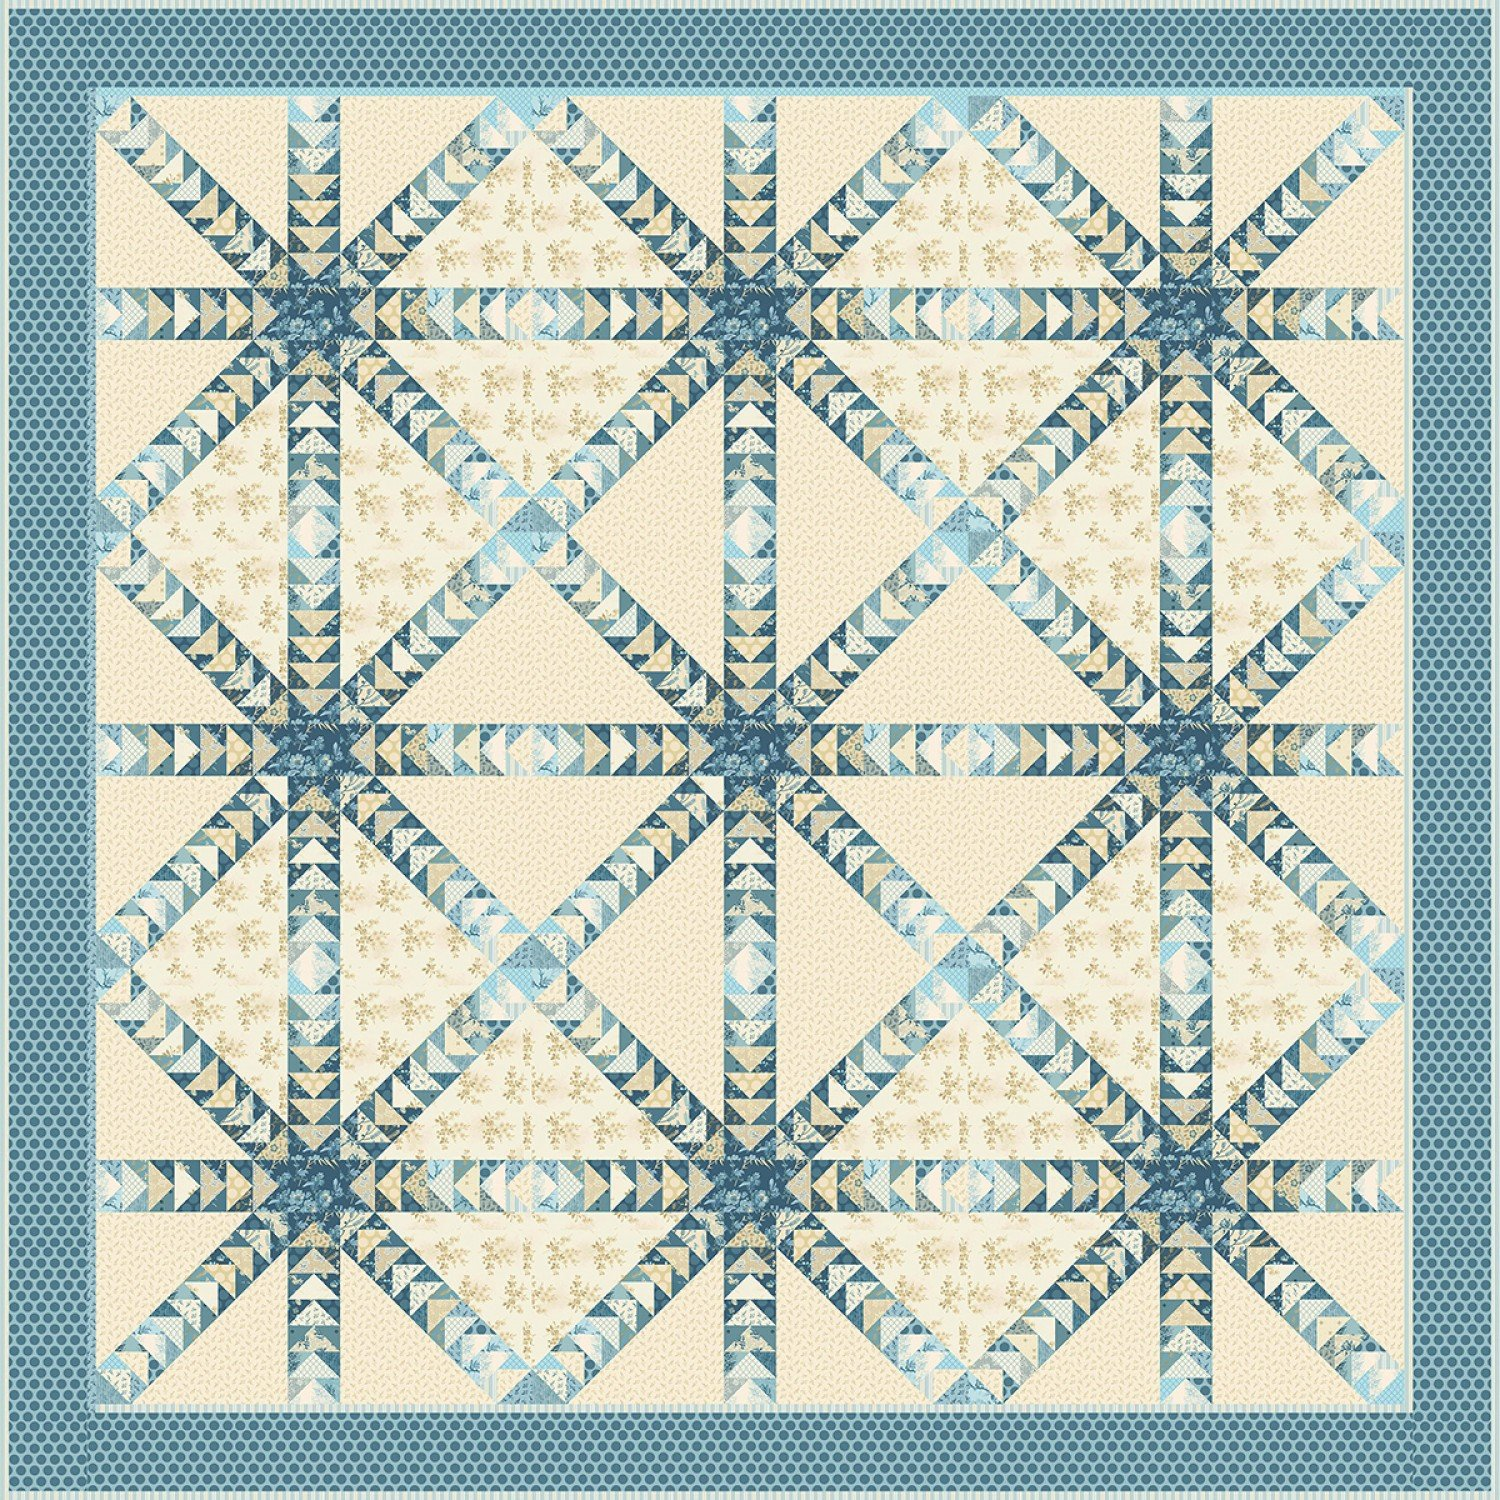 Something Blue Quilt Pattern by Laundry Basket Quilts